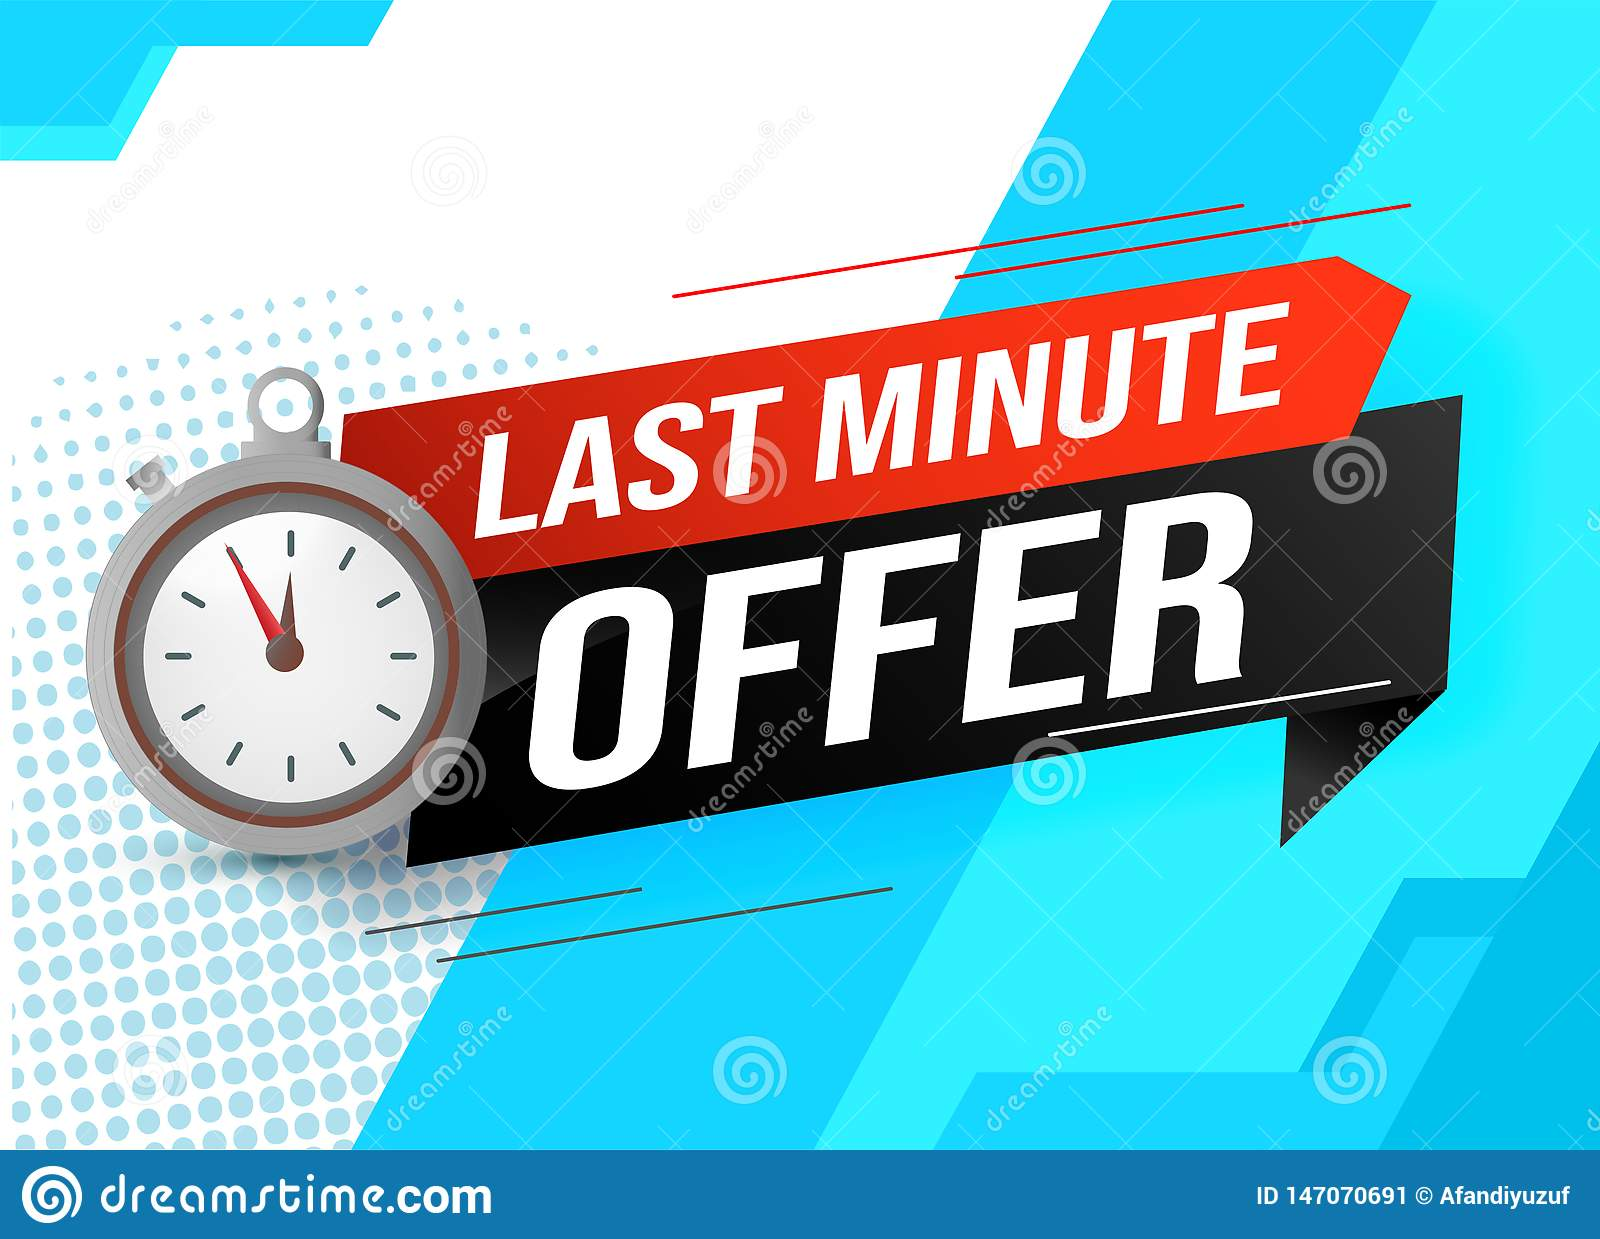 Last minute offer watch countdown Banner design template for marketing. Last chance promotion or retail. background banner poster